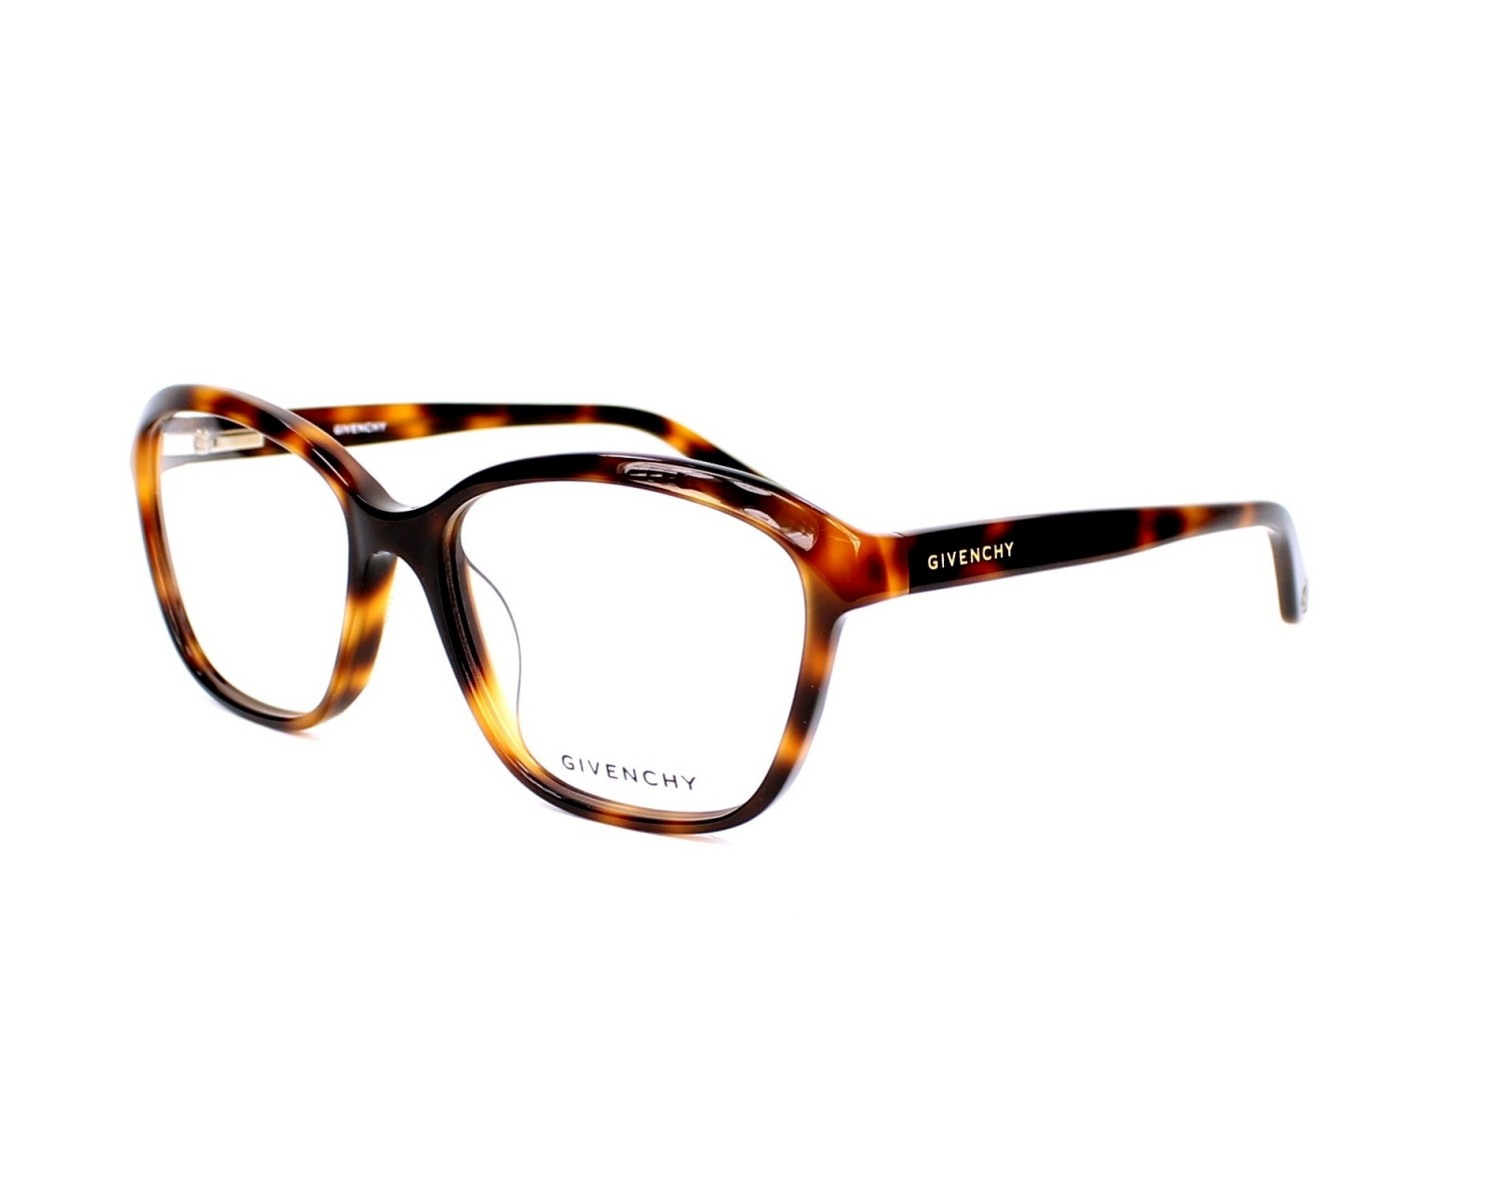 Eyeglass Frames Givenchy : Order your Givenchy eyeglasses VGV947 09AJ 53 today